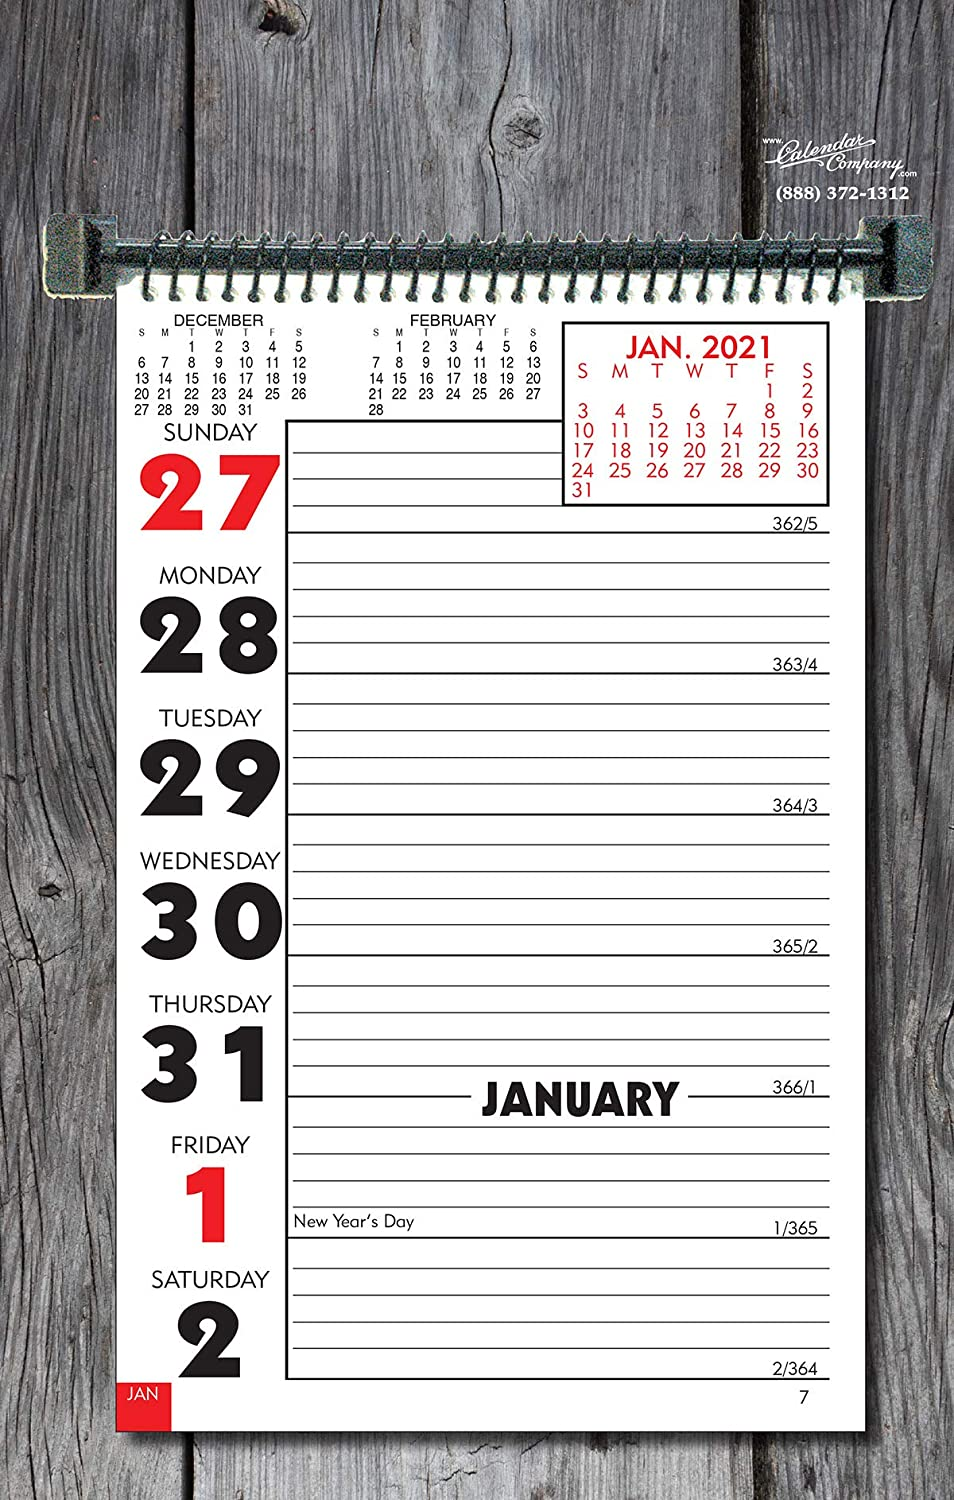 "CALENDAR COMPANY 2021 Weekly Planning Wall or Desk Calendar with Memo Space and Almanac info 11"" x 7"" Made in The USA"